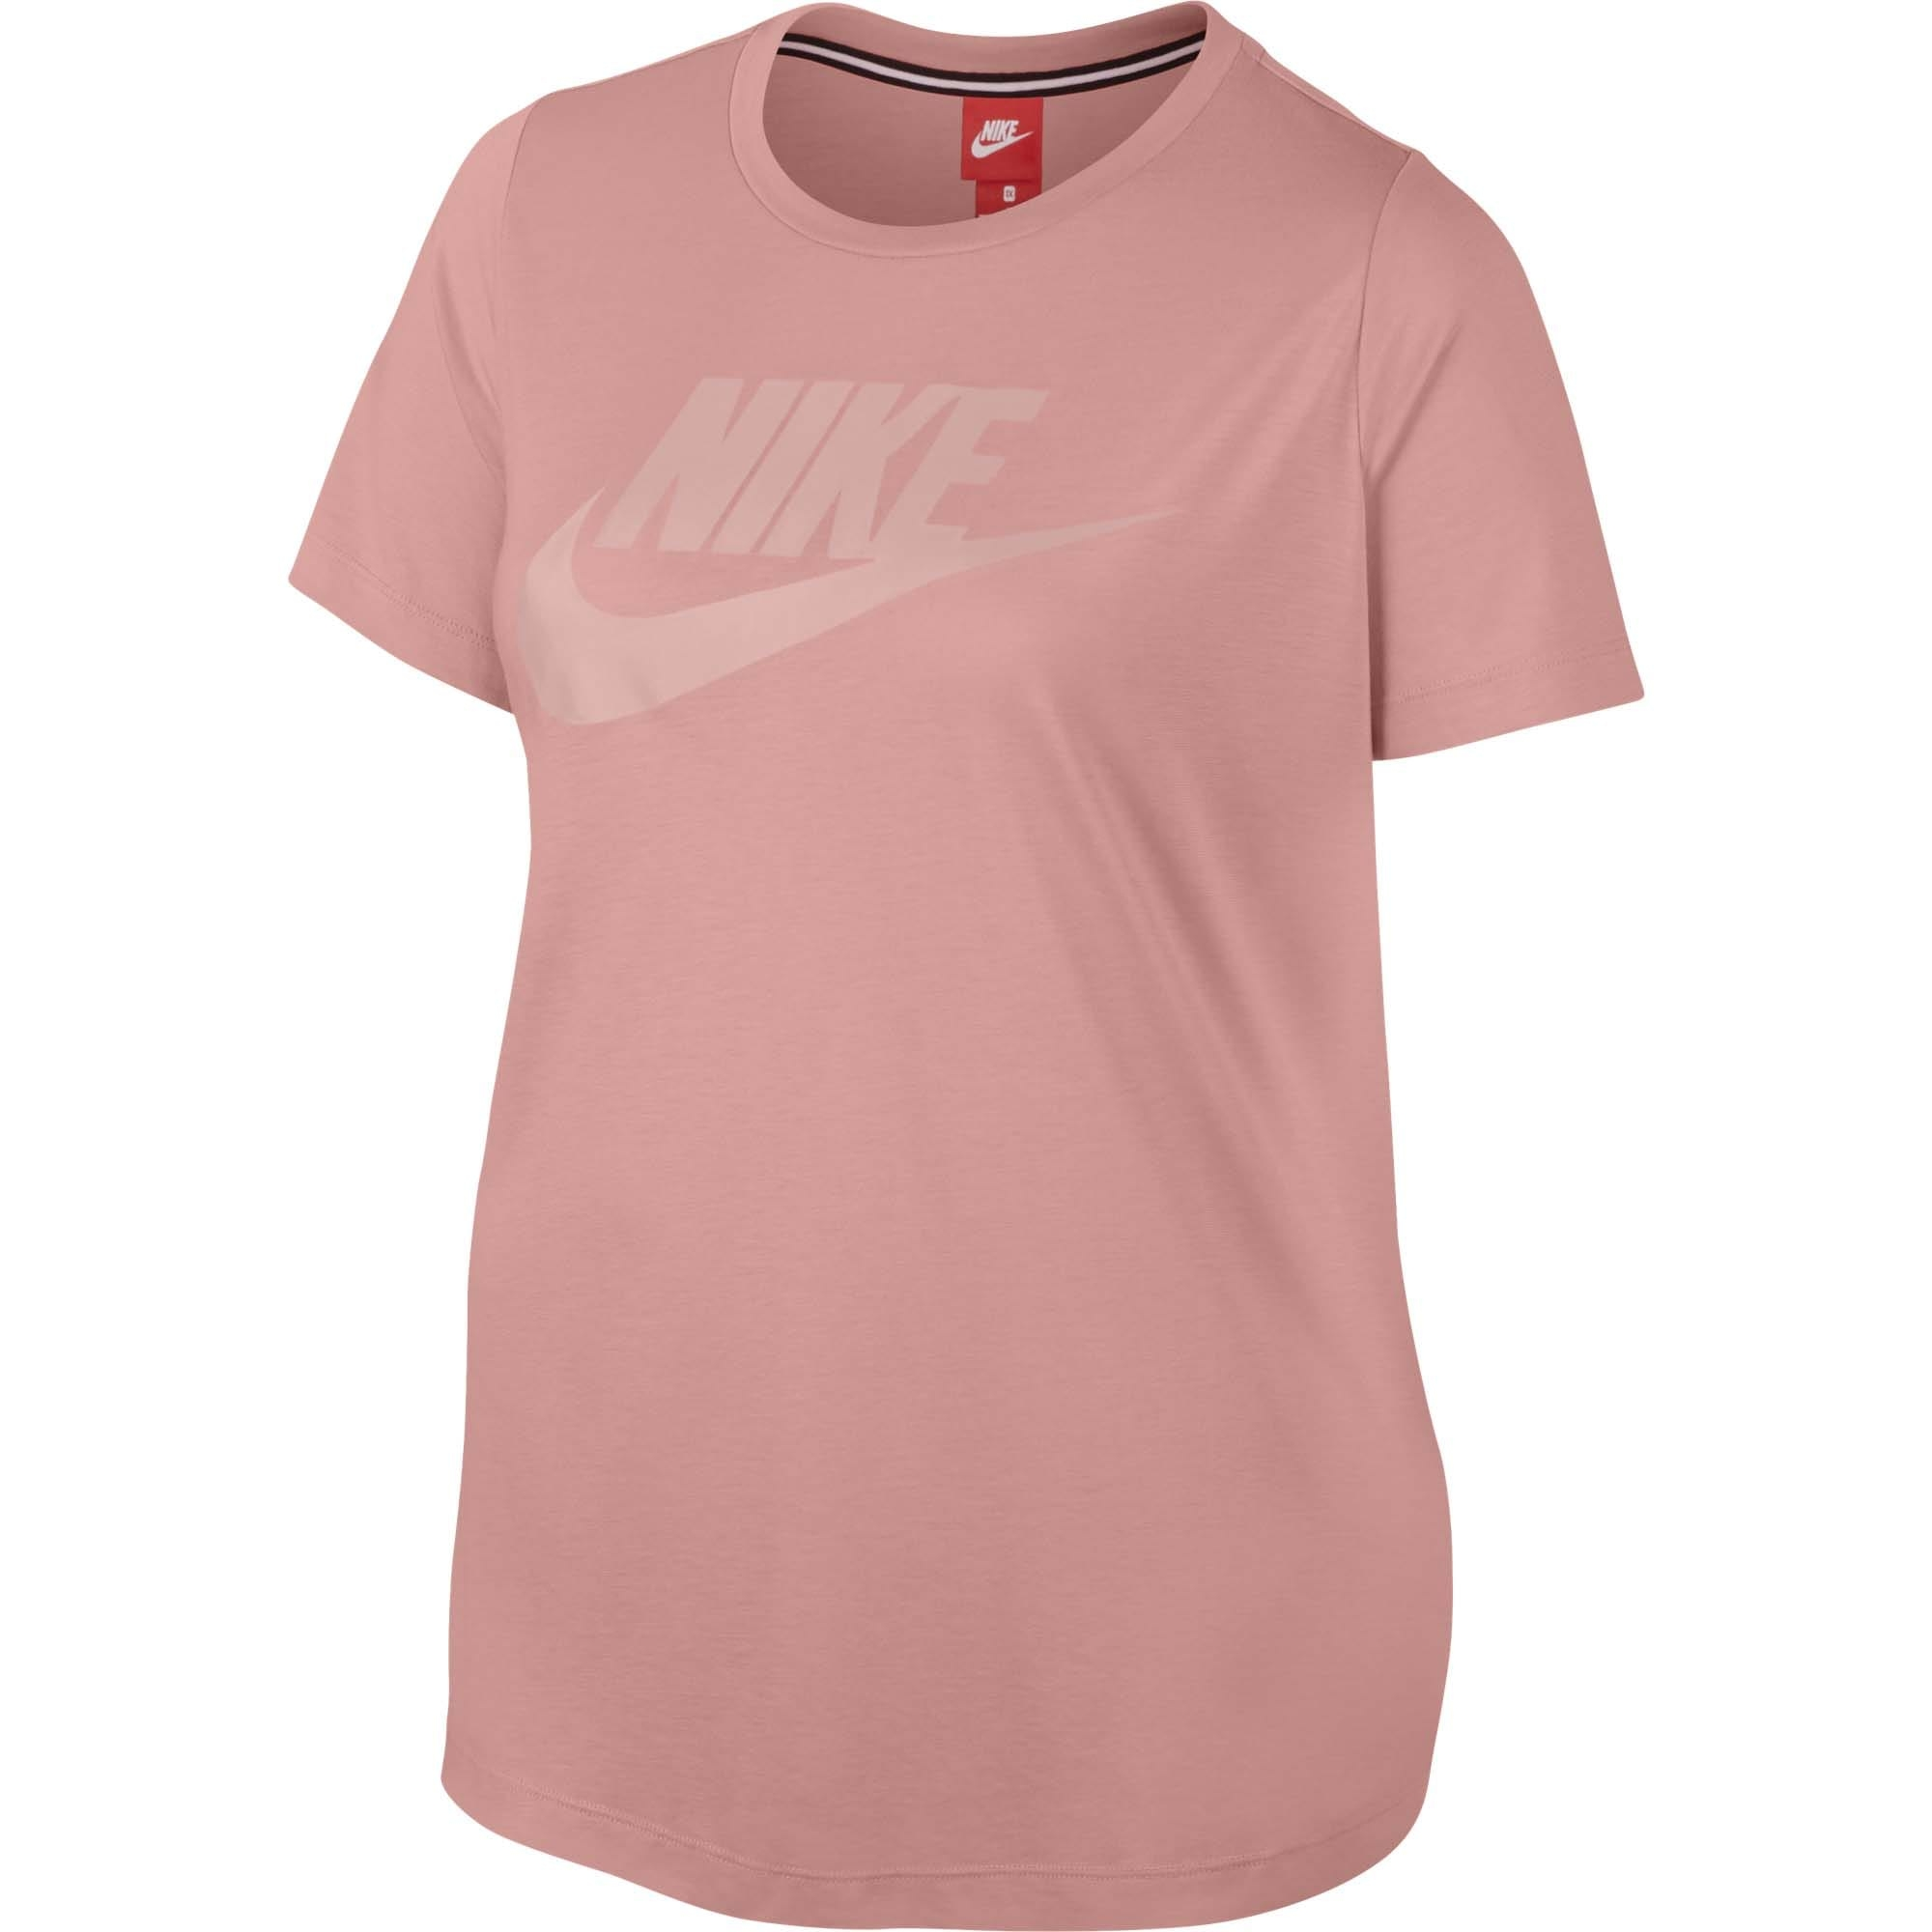 8bbd752a29 CAMISETA NIKE SPOTER PARA MUJER 829747-697 - Deportes Liverpool